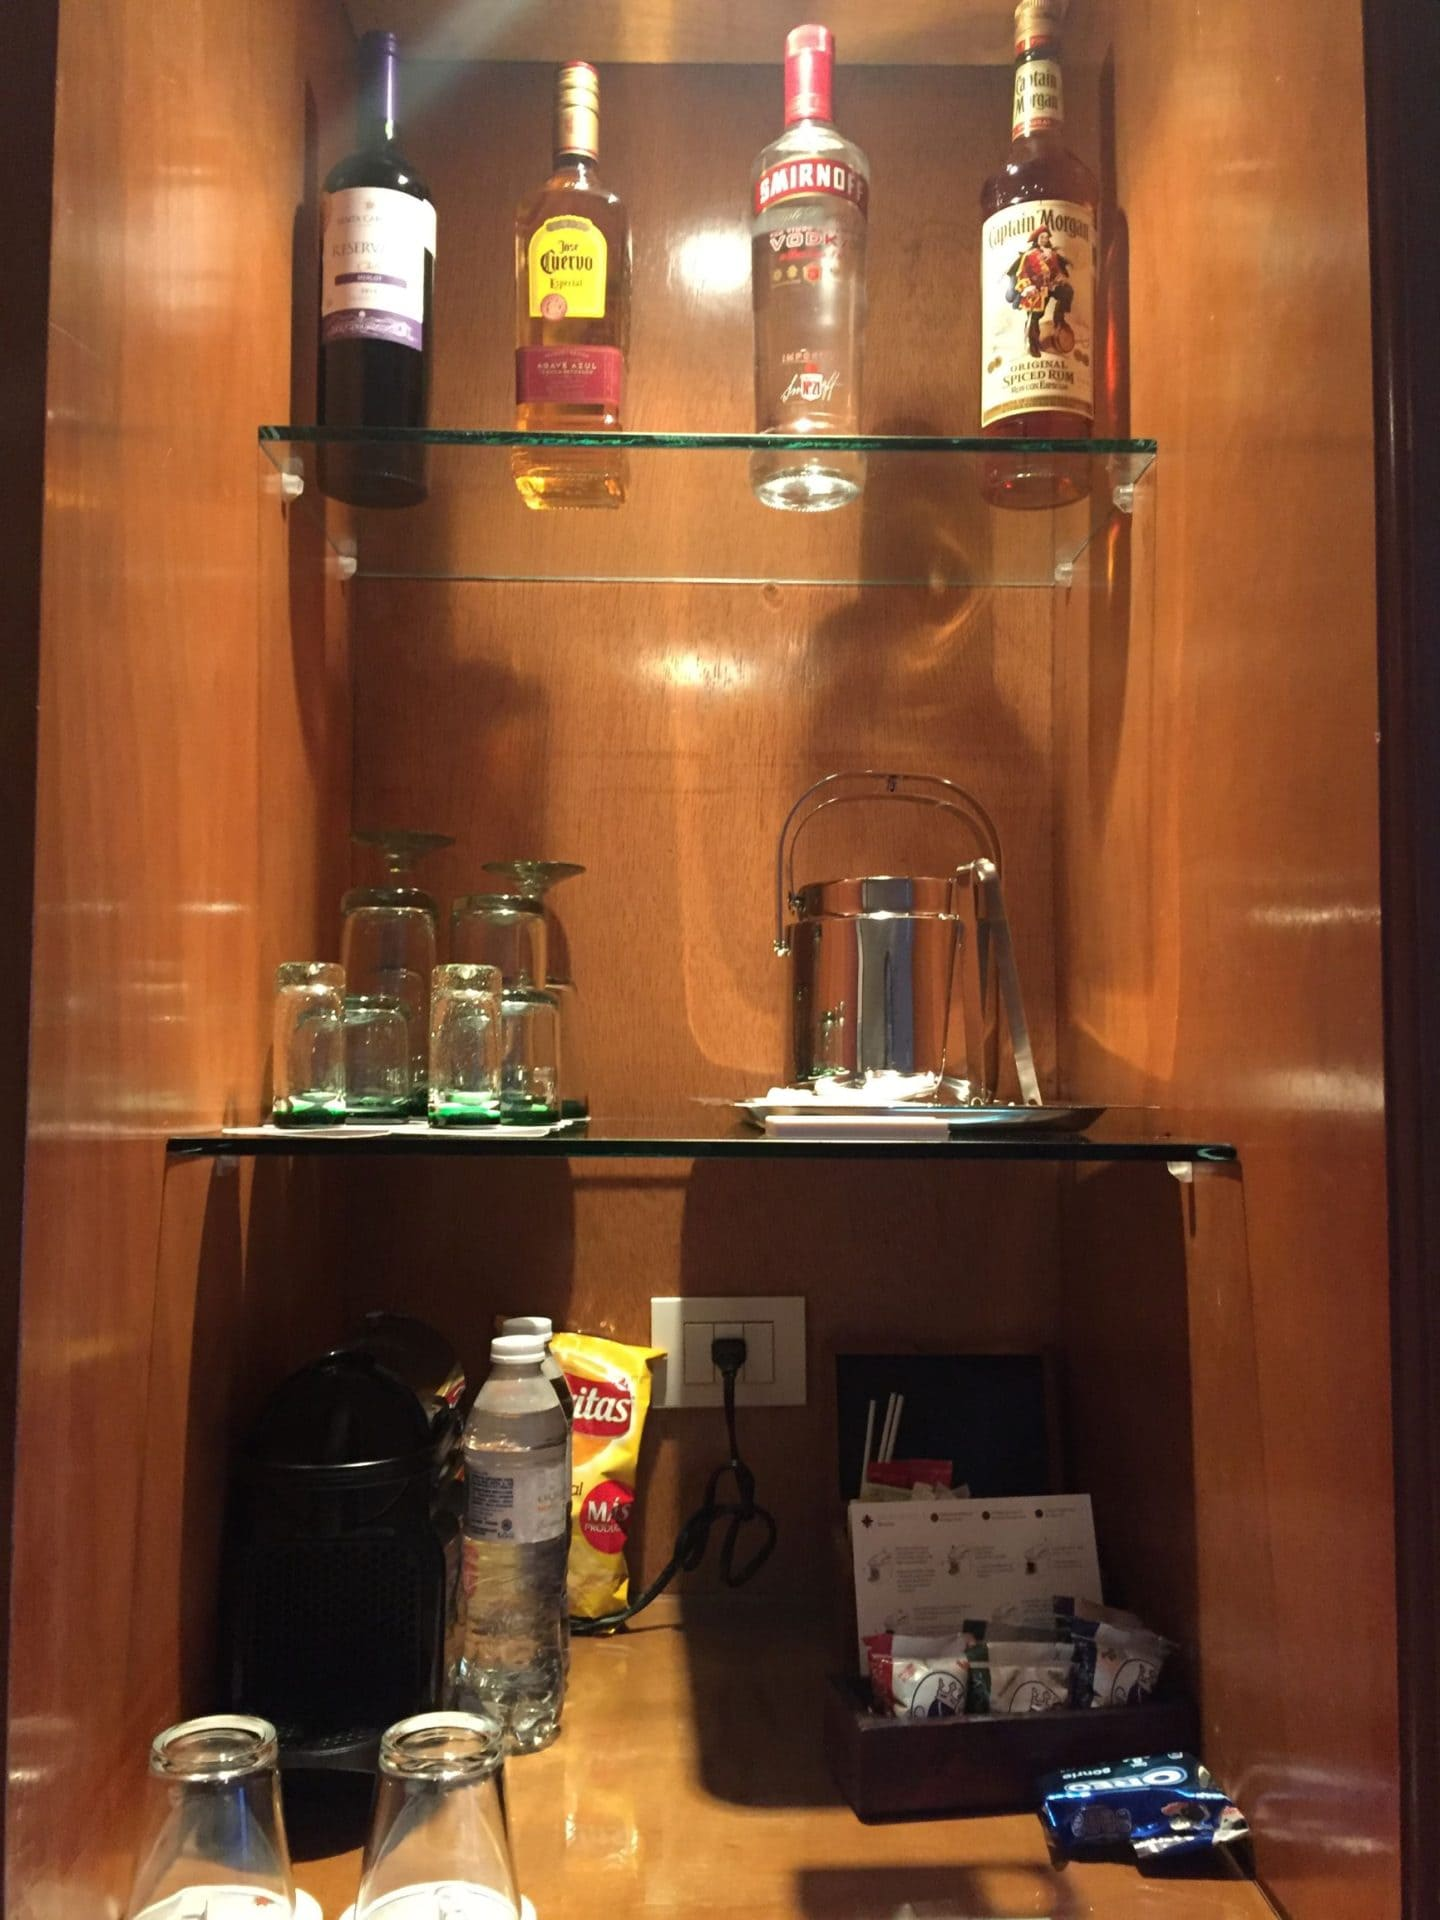 Mini bar in room at Excellence Riviera Cancun